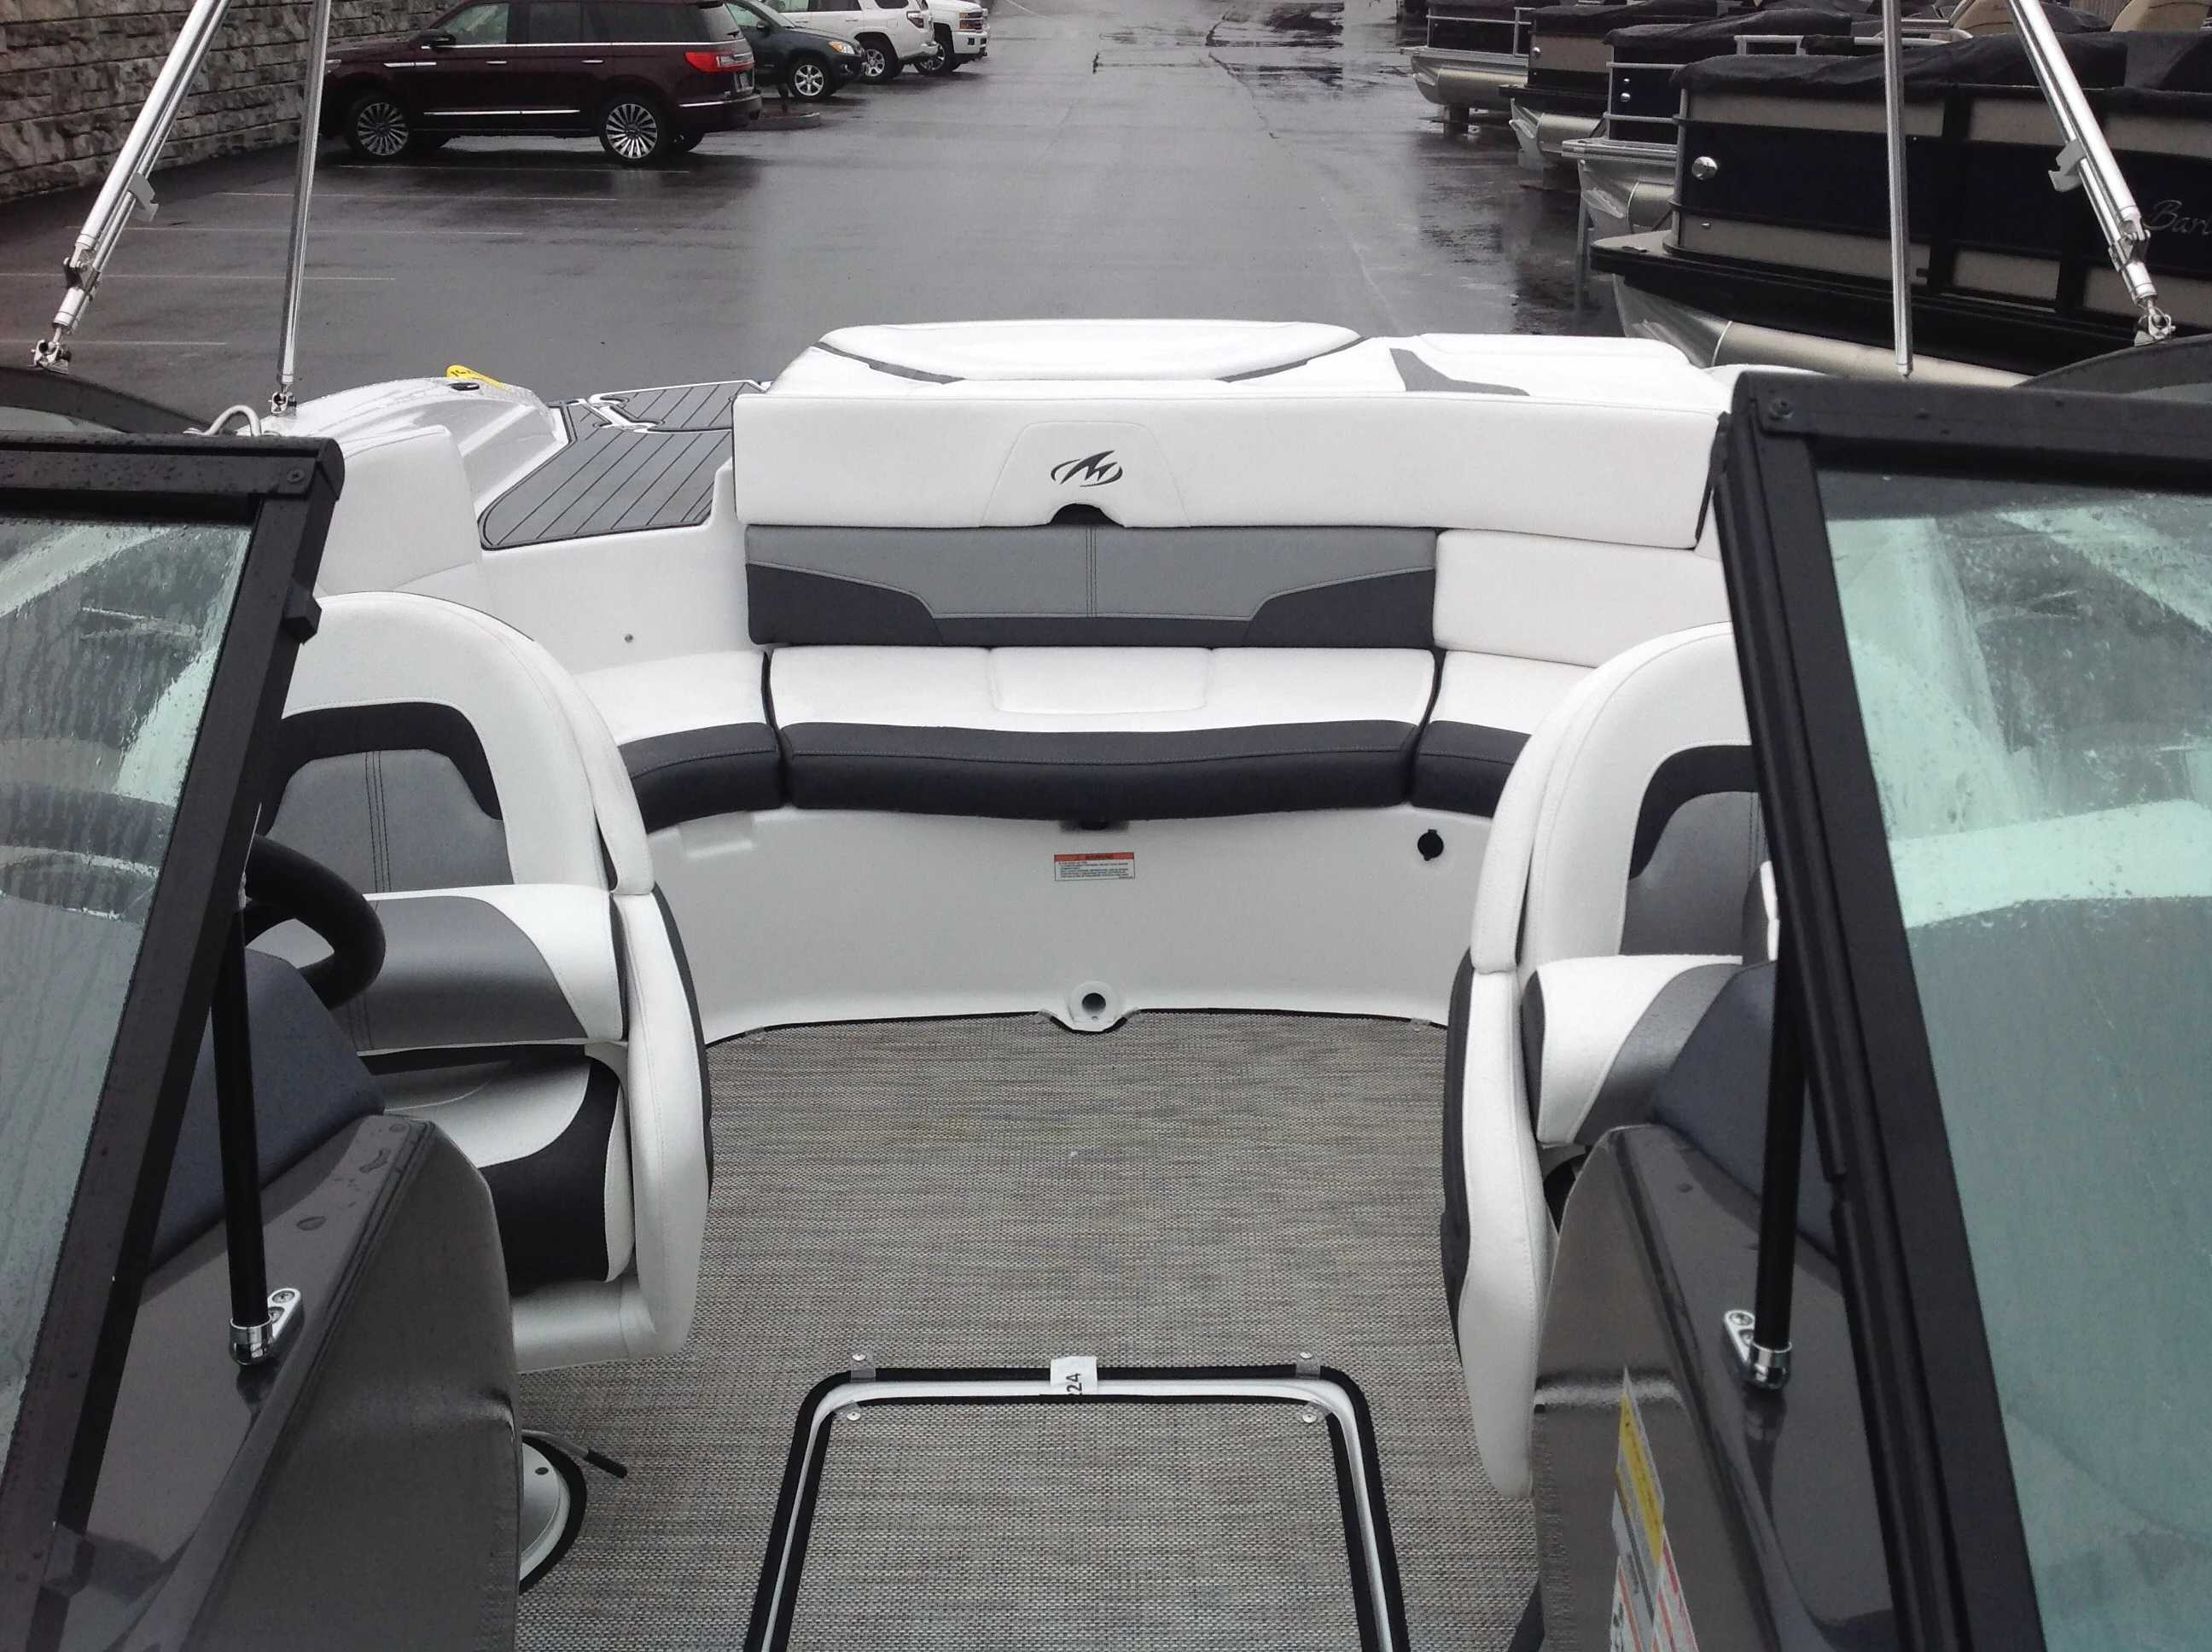 2021 Monterey boat for sale, model of the boat is 224FS & Image # 5 of 11